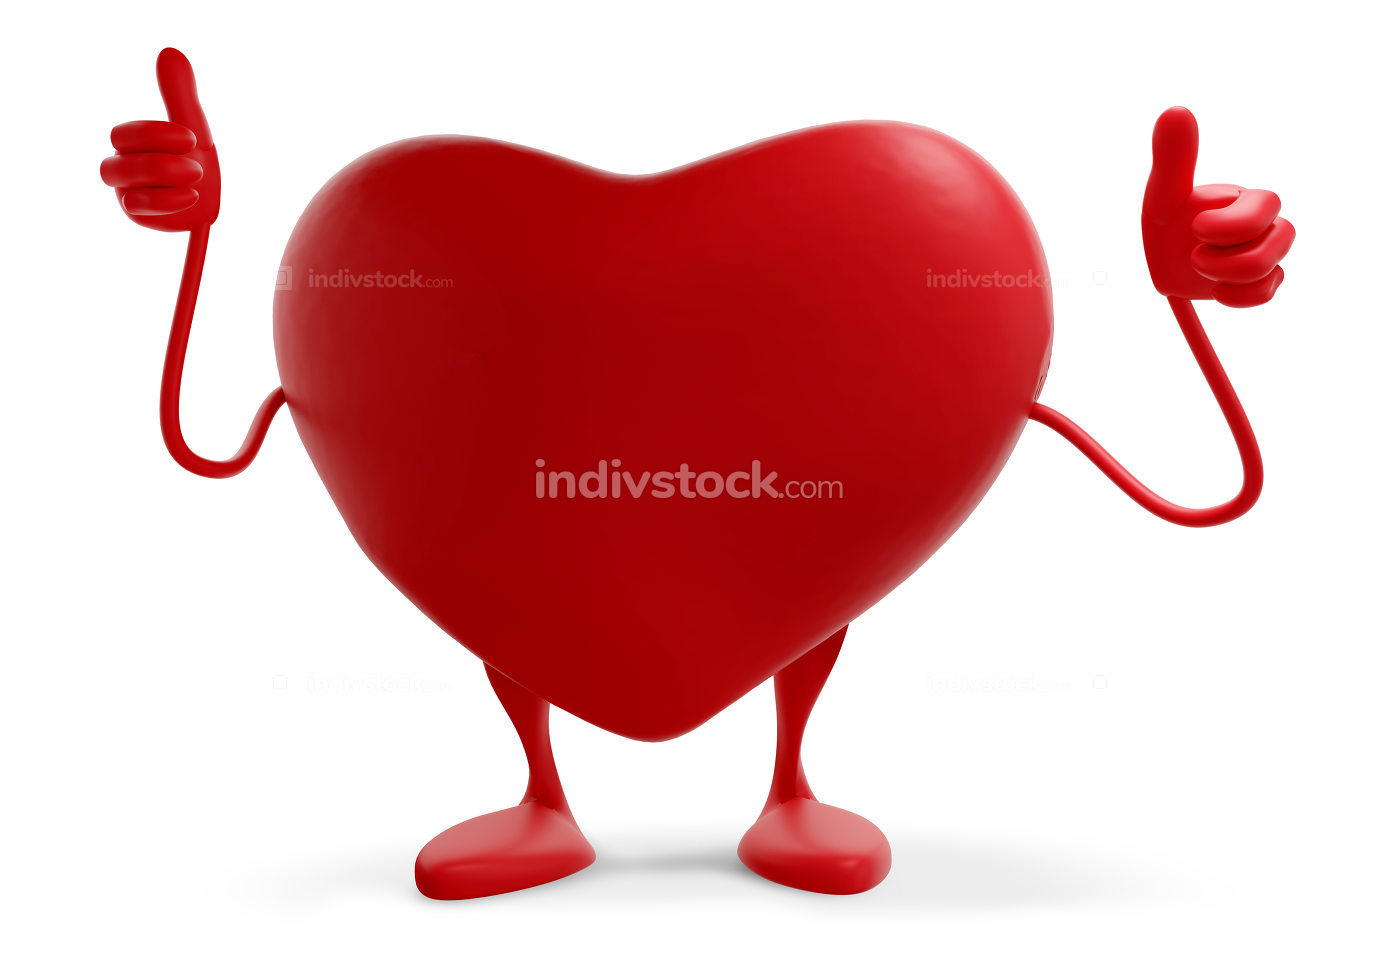 red heart thumbs up figure mascot 3d-illustration